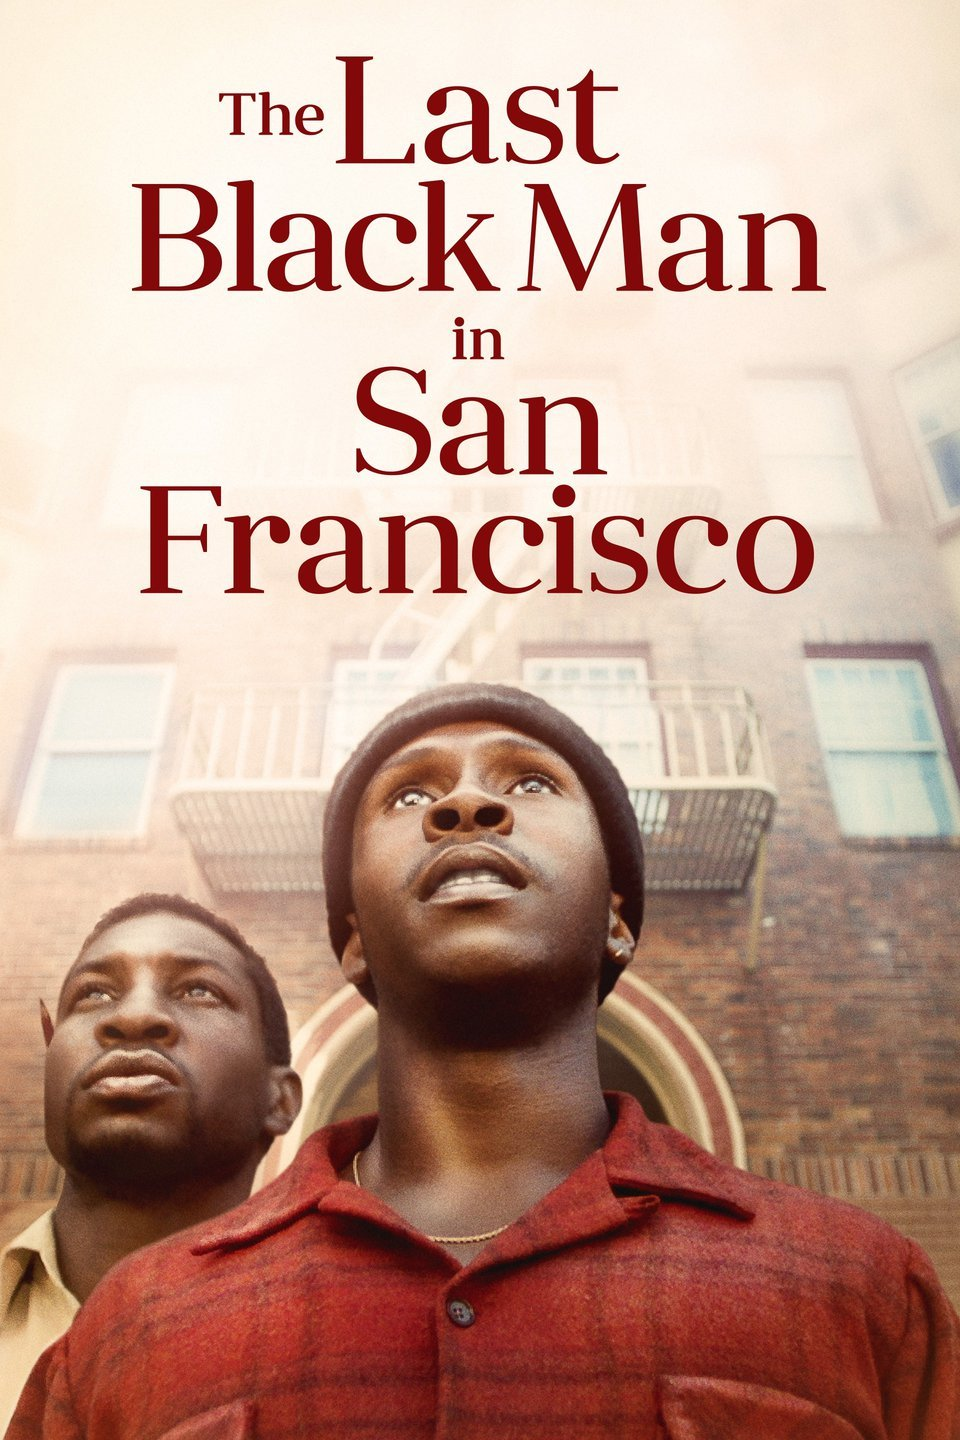 Poster for The Last Black Man in San Francisco